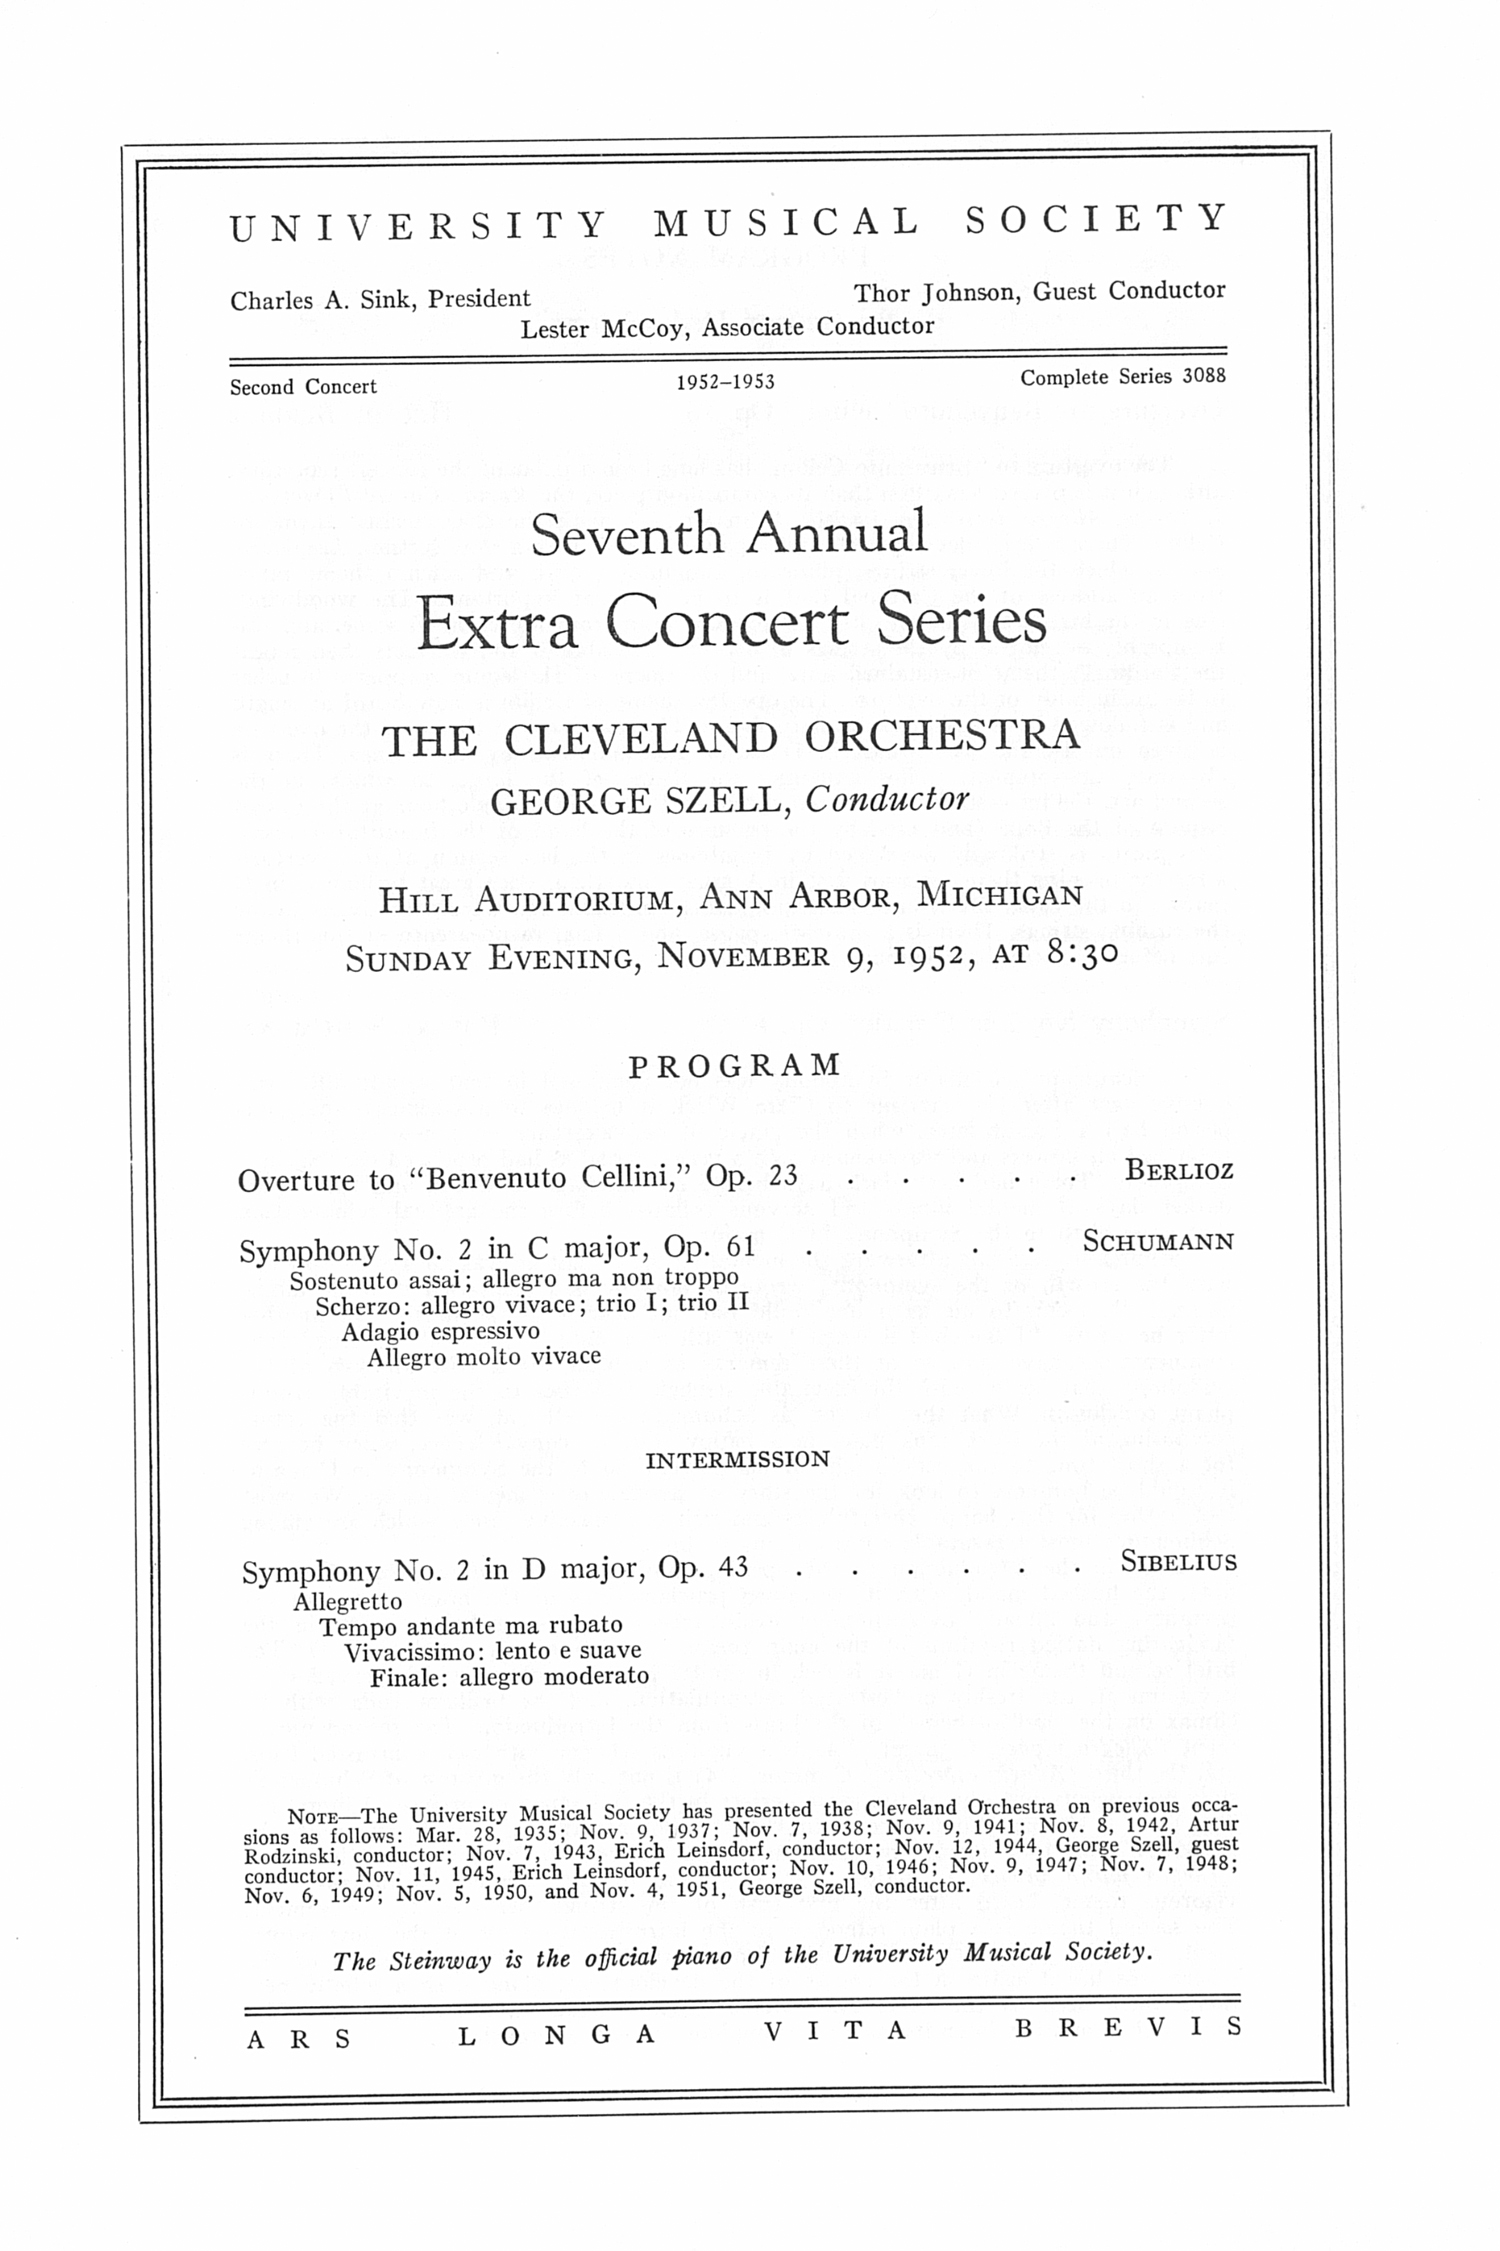 UMS Concert Program, Sunday Evening, November 9, 1952: Seventh Annual Extra Concert Series -- The Cleveland Orchestra image